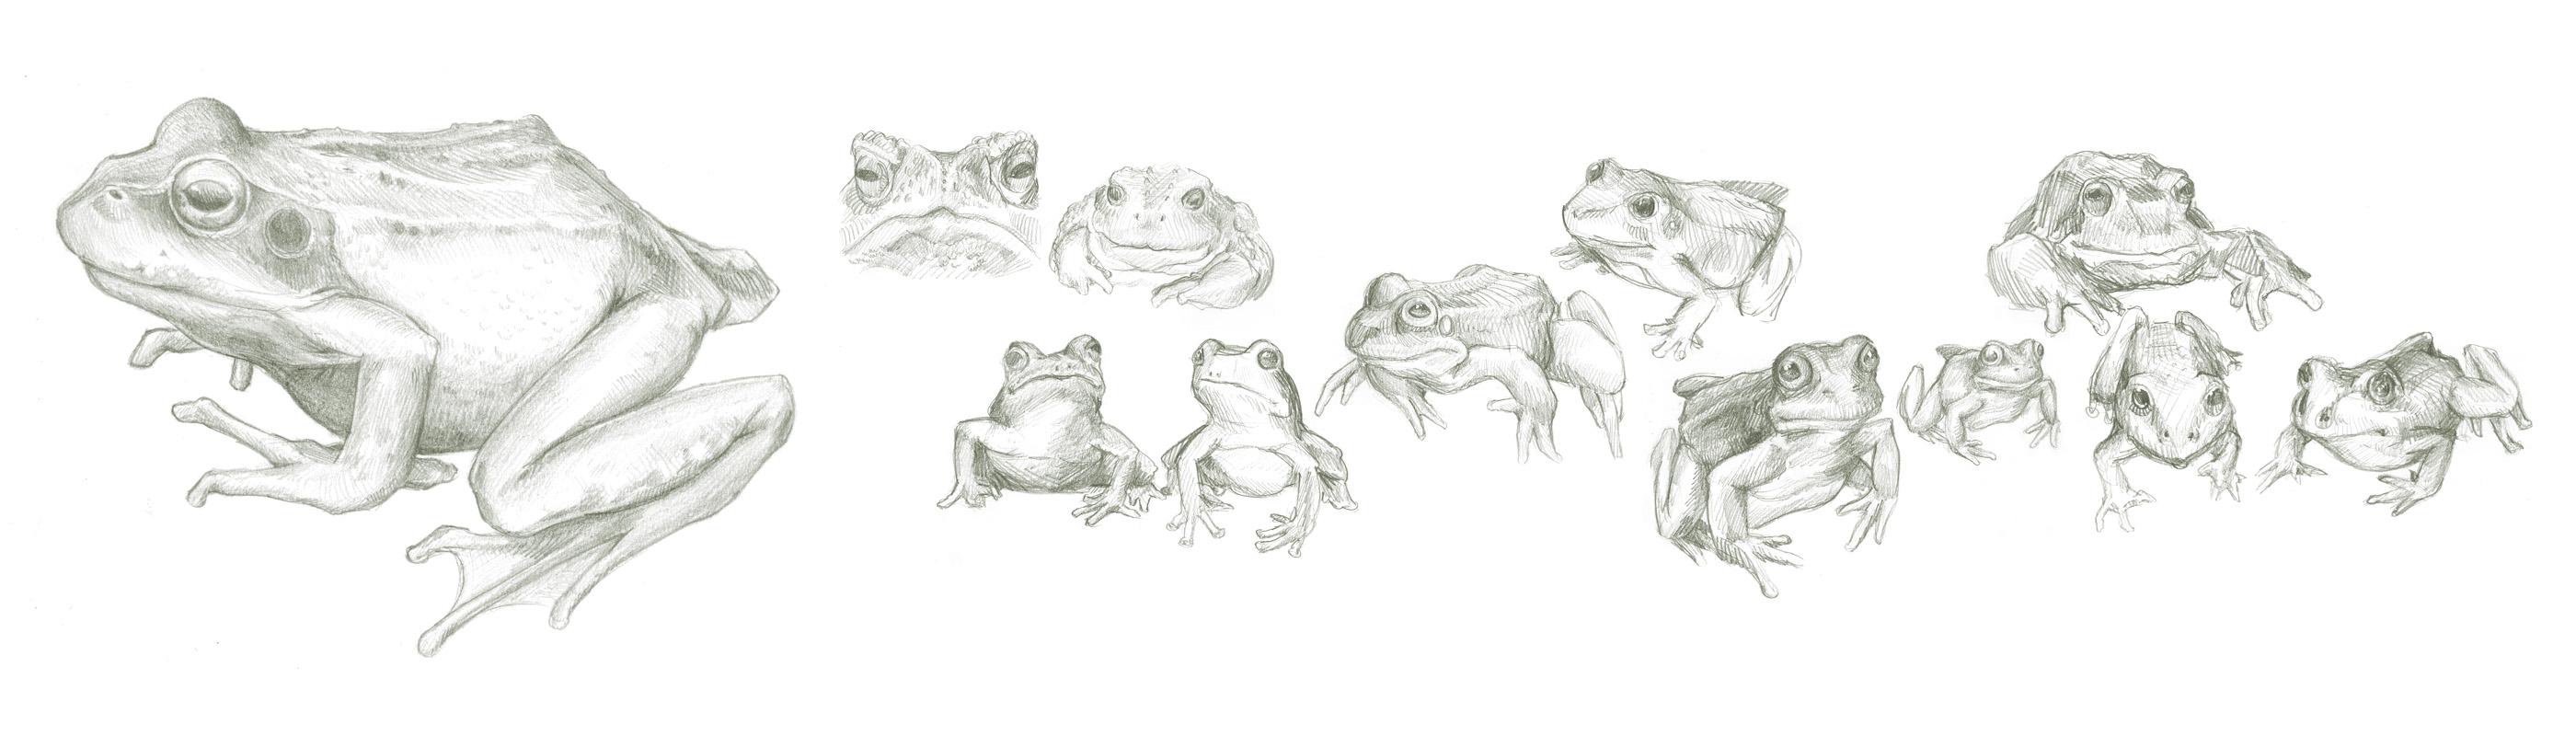 40_frogs